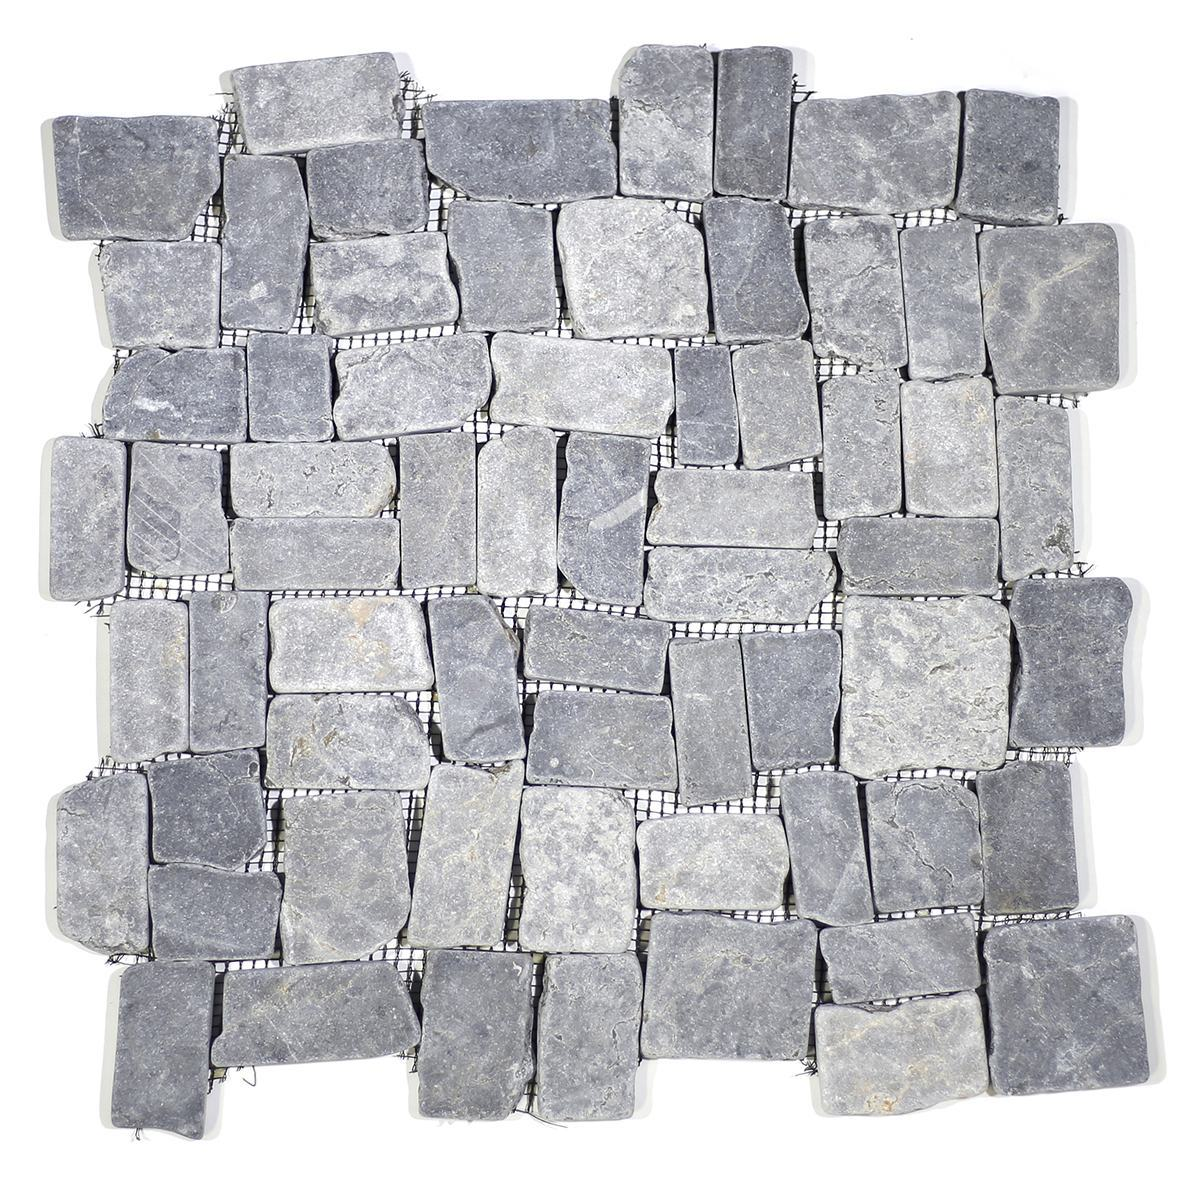 BLOCK TUMBLE MARBLE TILE GREY STONE PEBBLES  MOSAIC